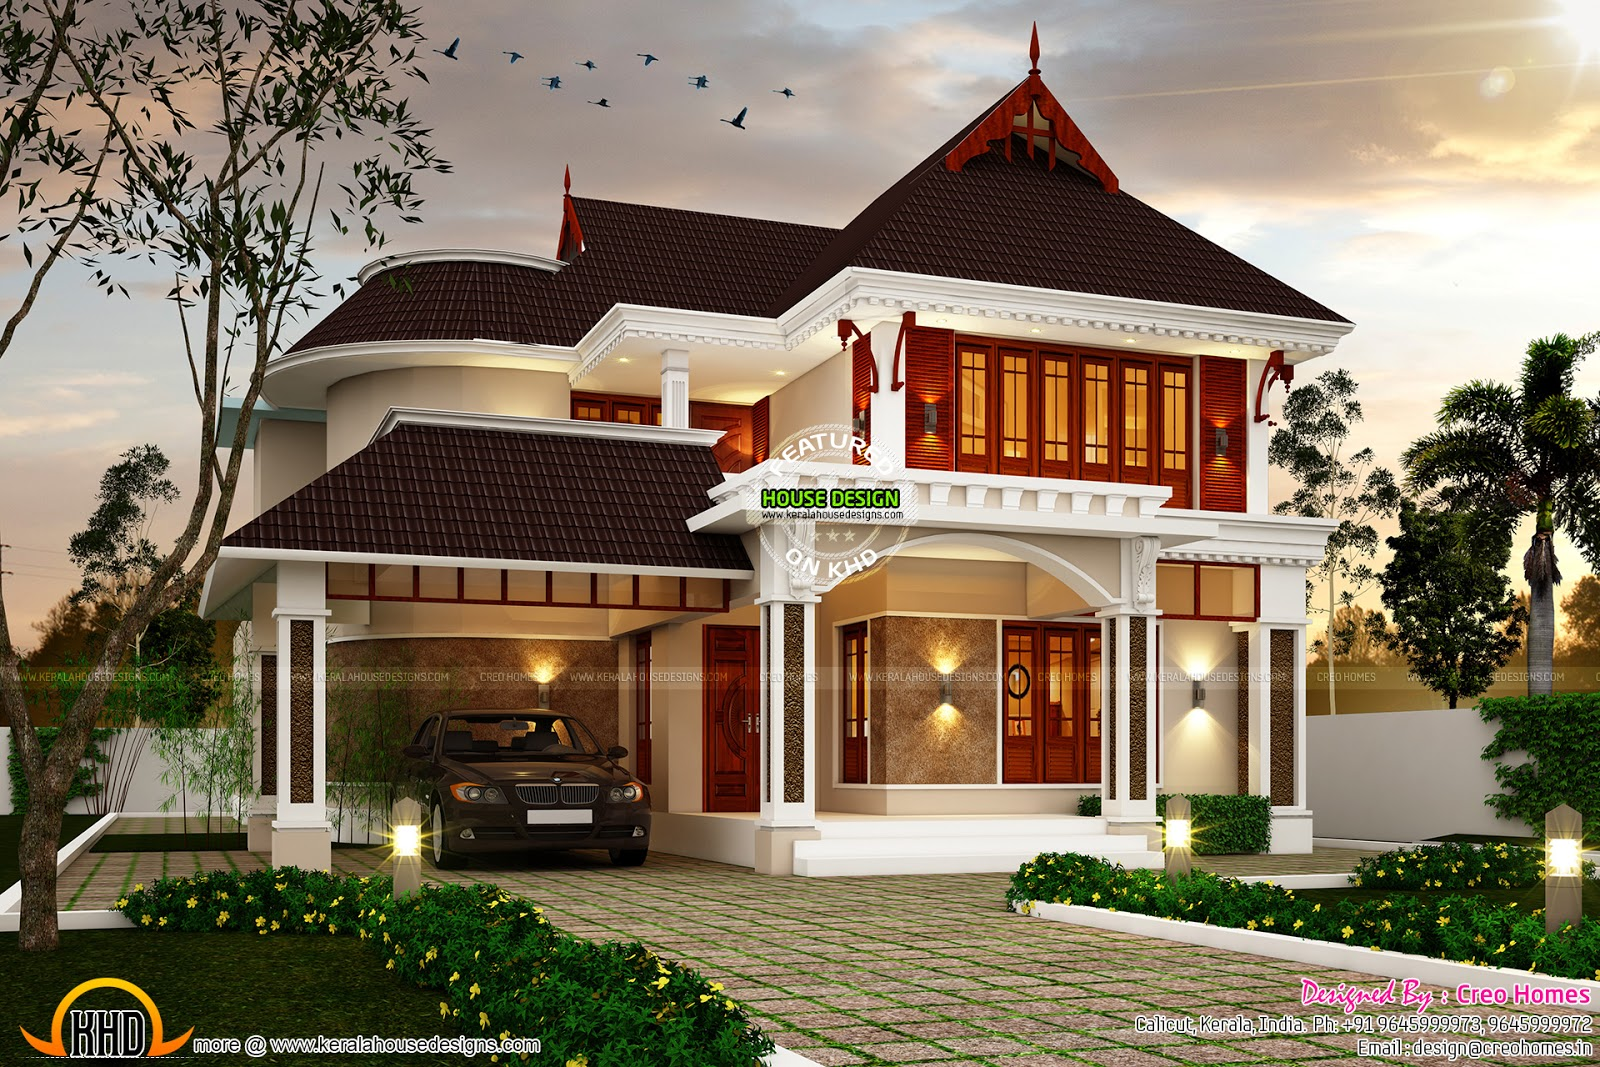 Kerala dream homes plans house design plans for Dream home design